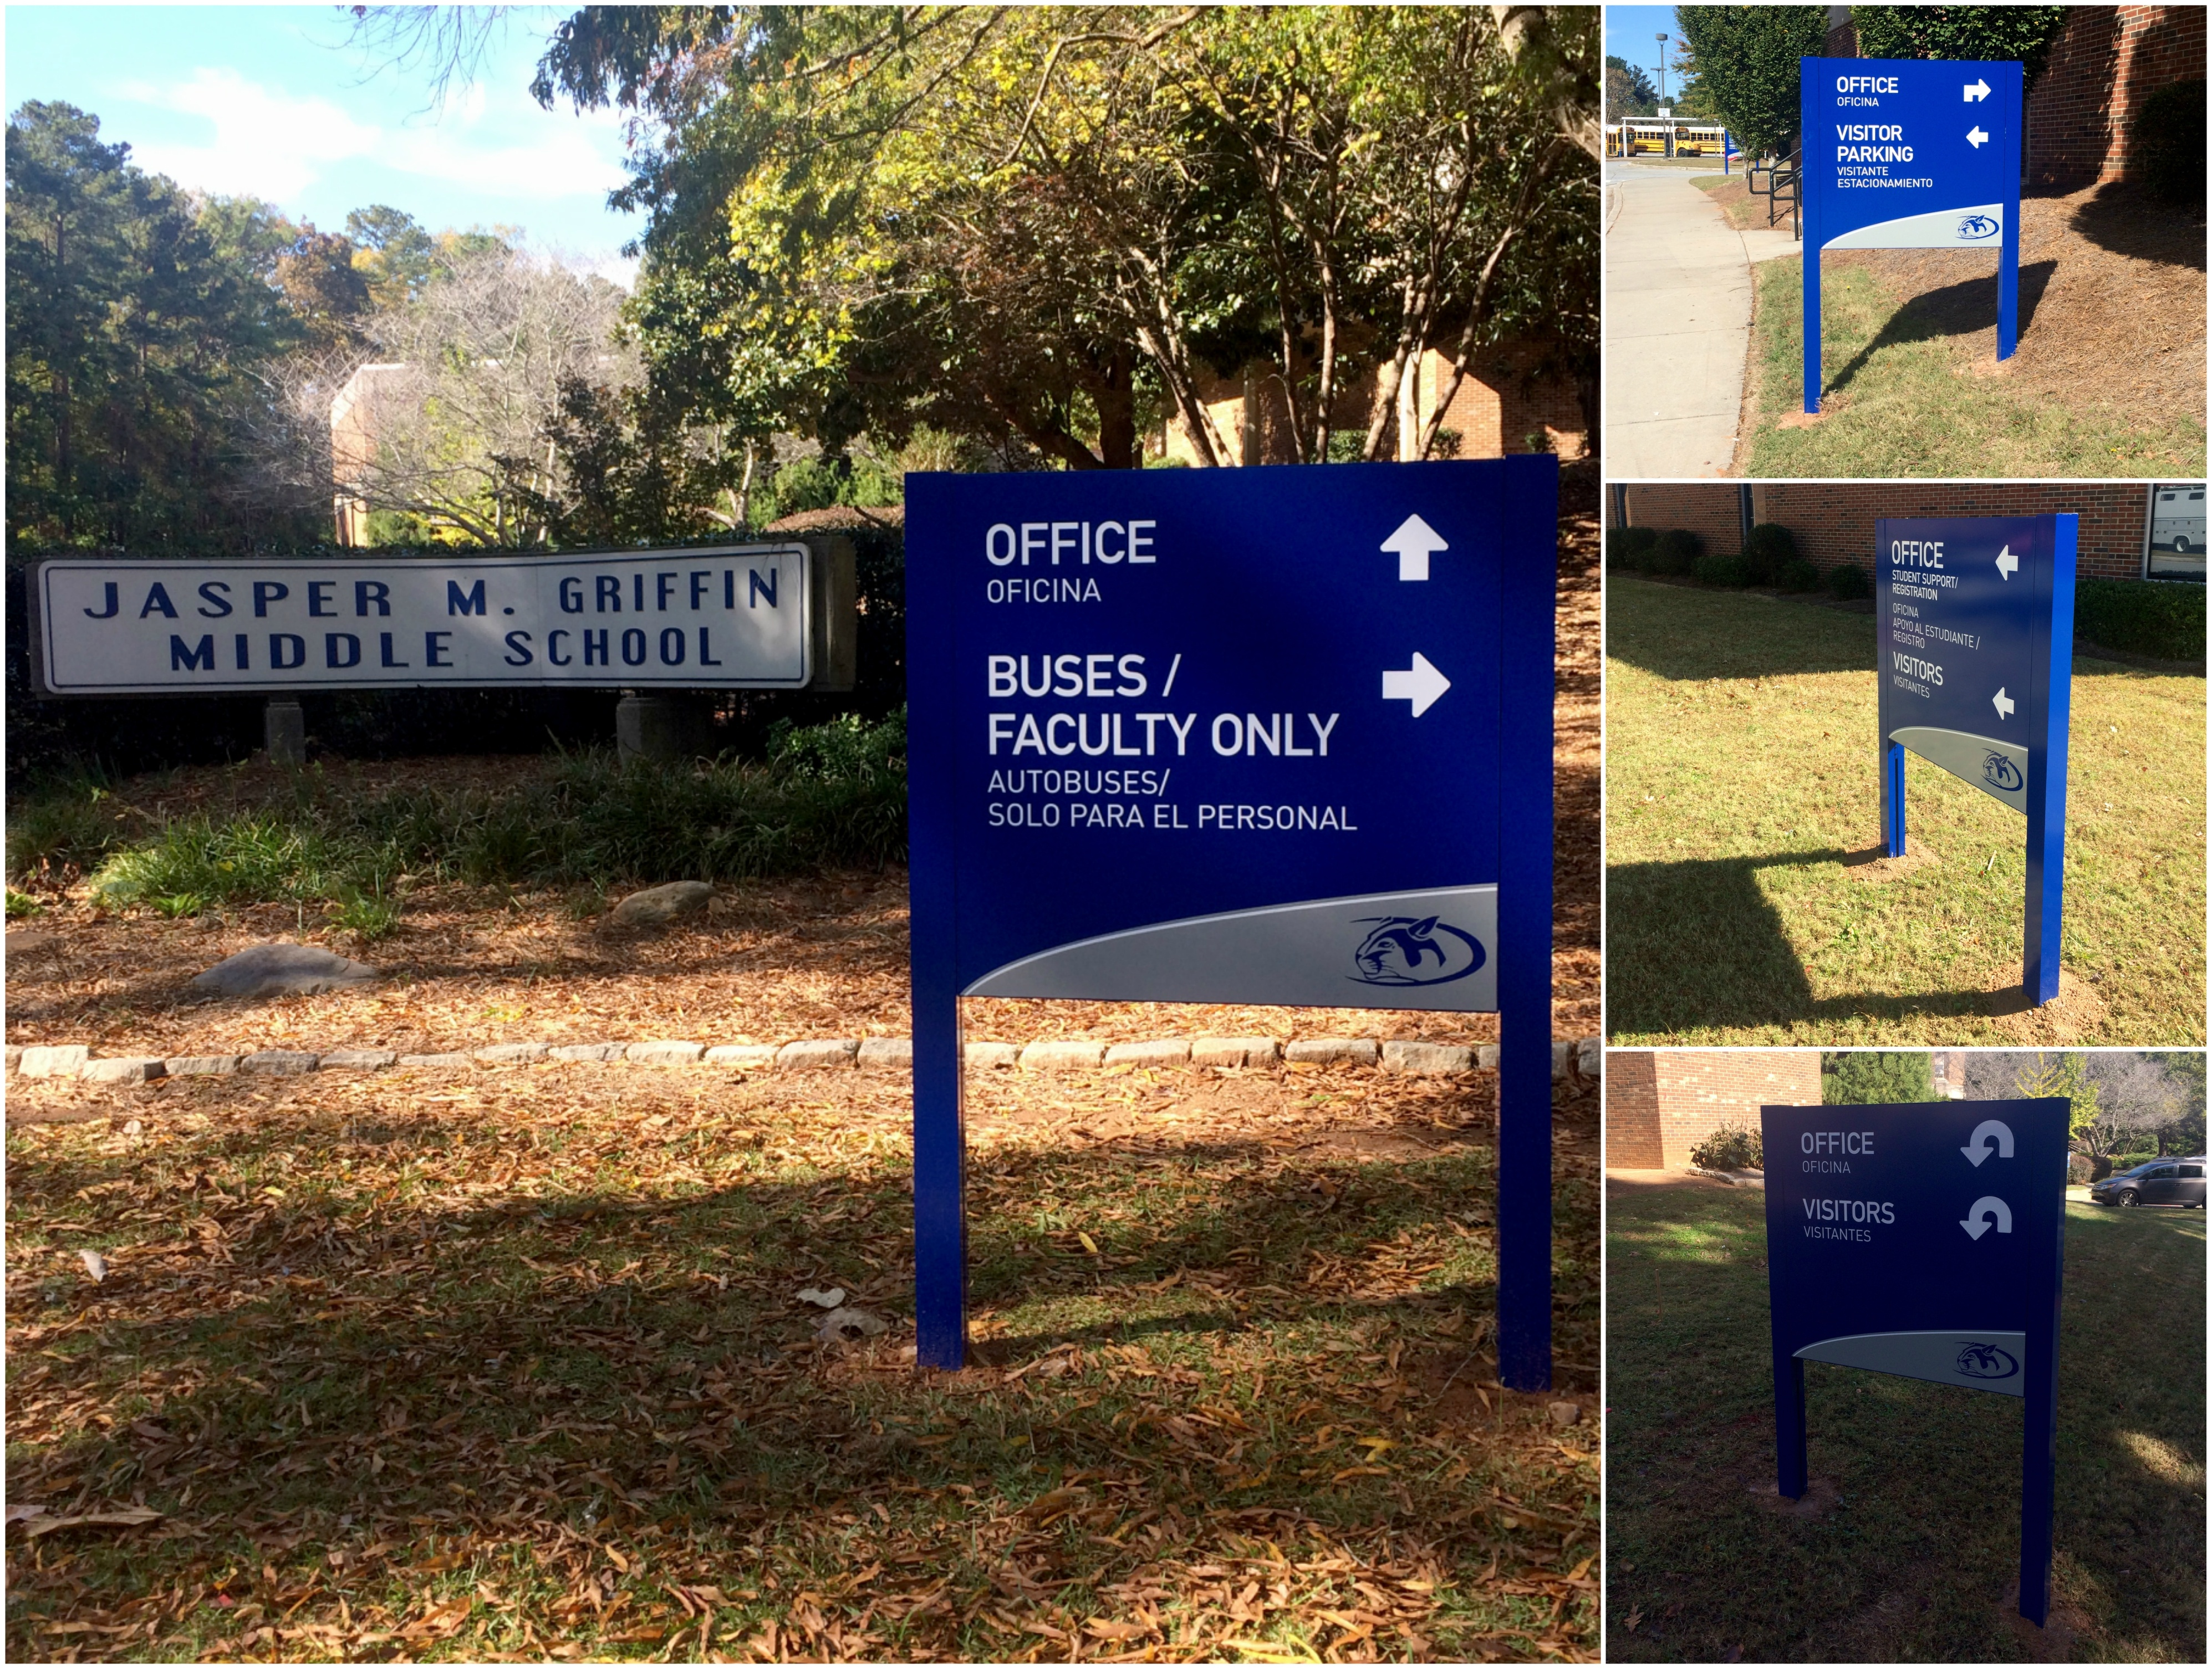 Griffin_Middle_School_Wayfinding_Directional_Sign_Collage_Collage.jpg